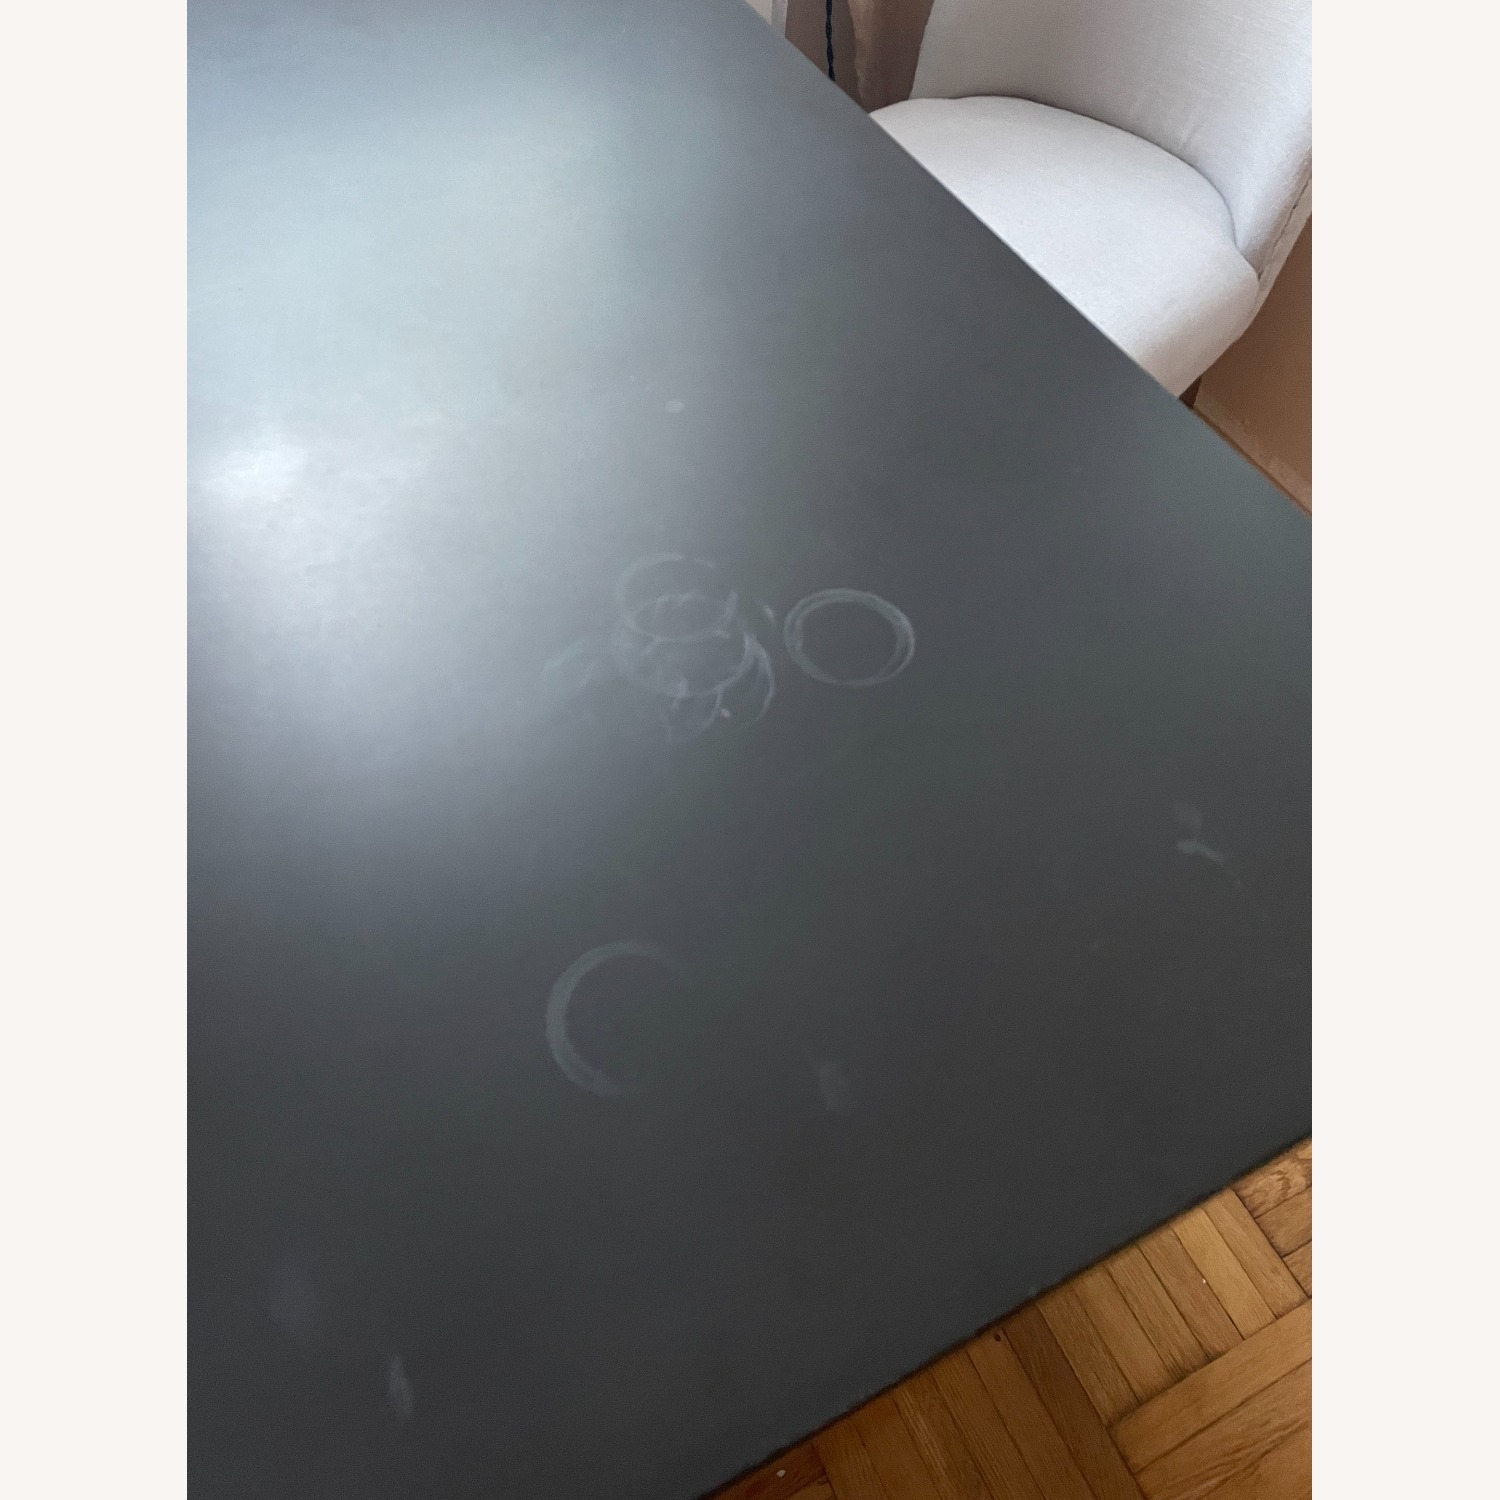 Restoration Hardware Salvaged Wood and Concrete Dining Table - image-30